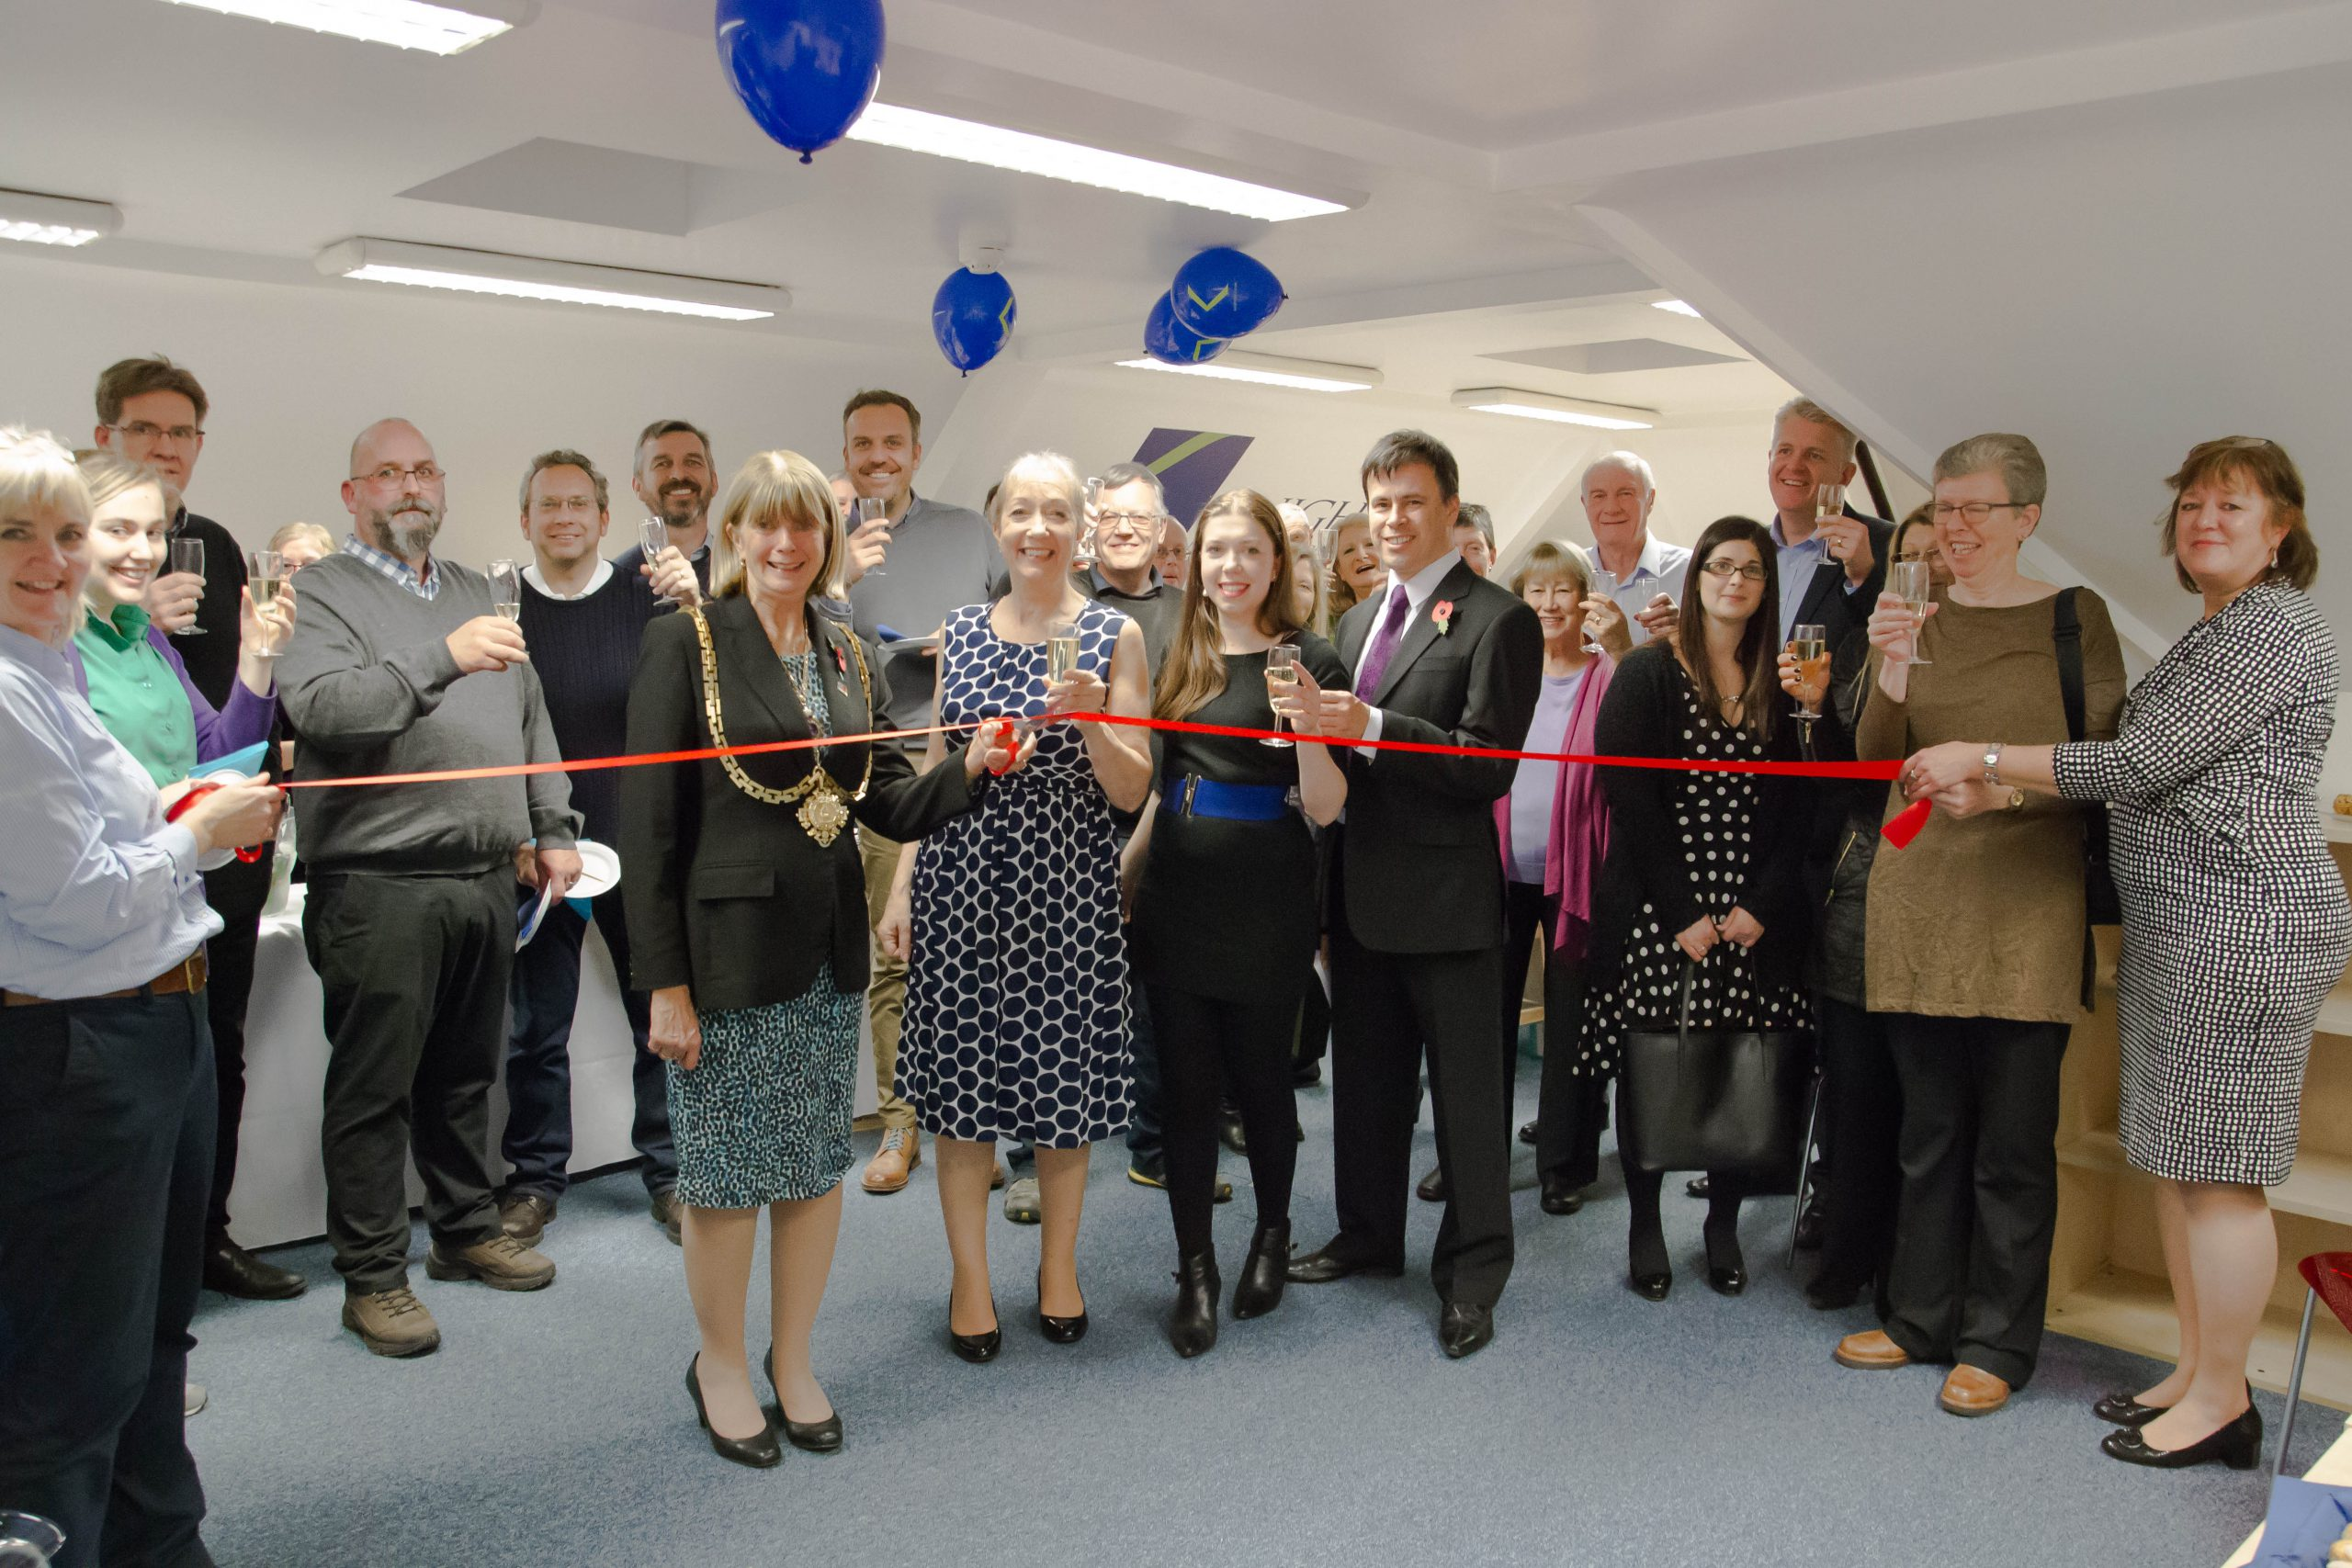 New offices for two Hertford businesses